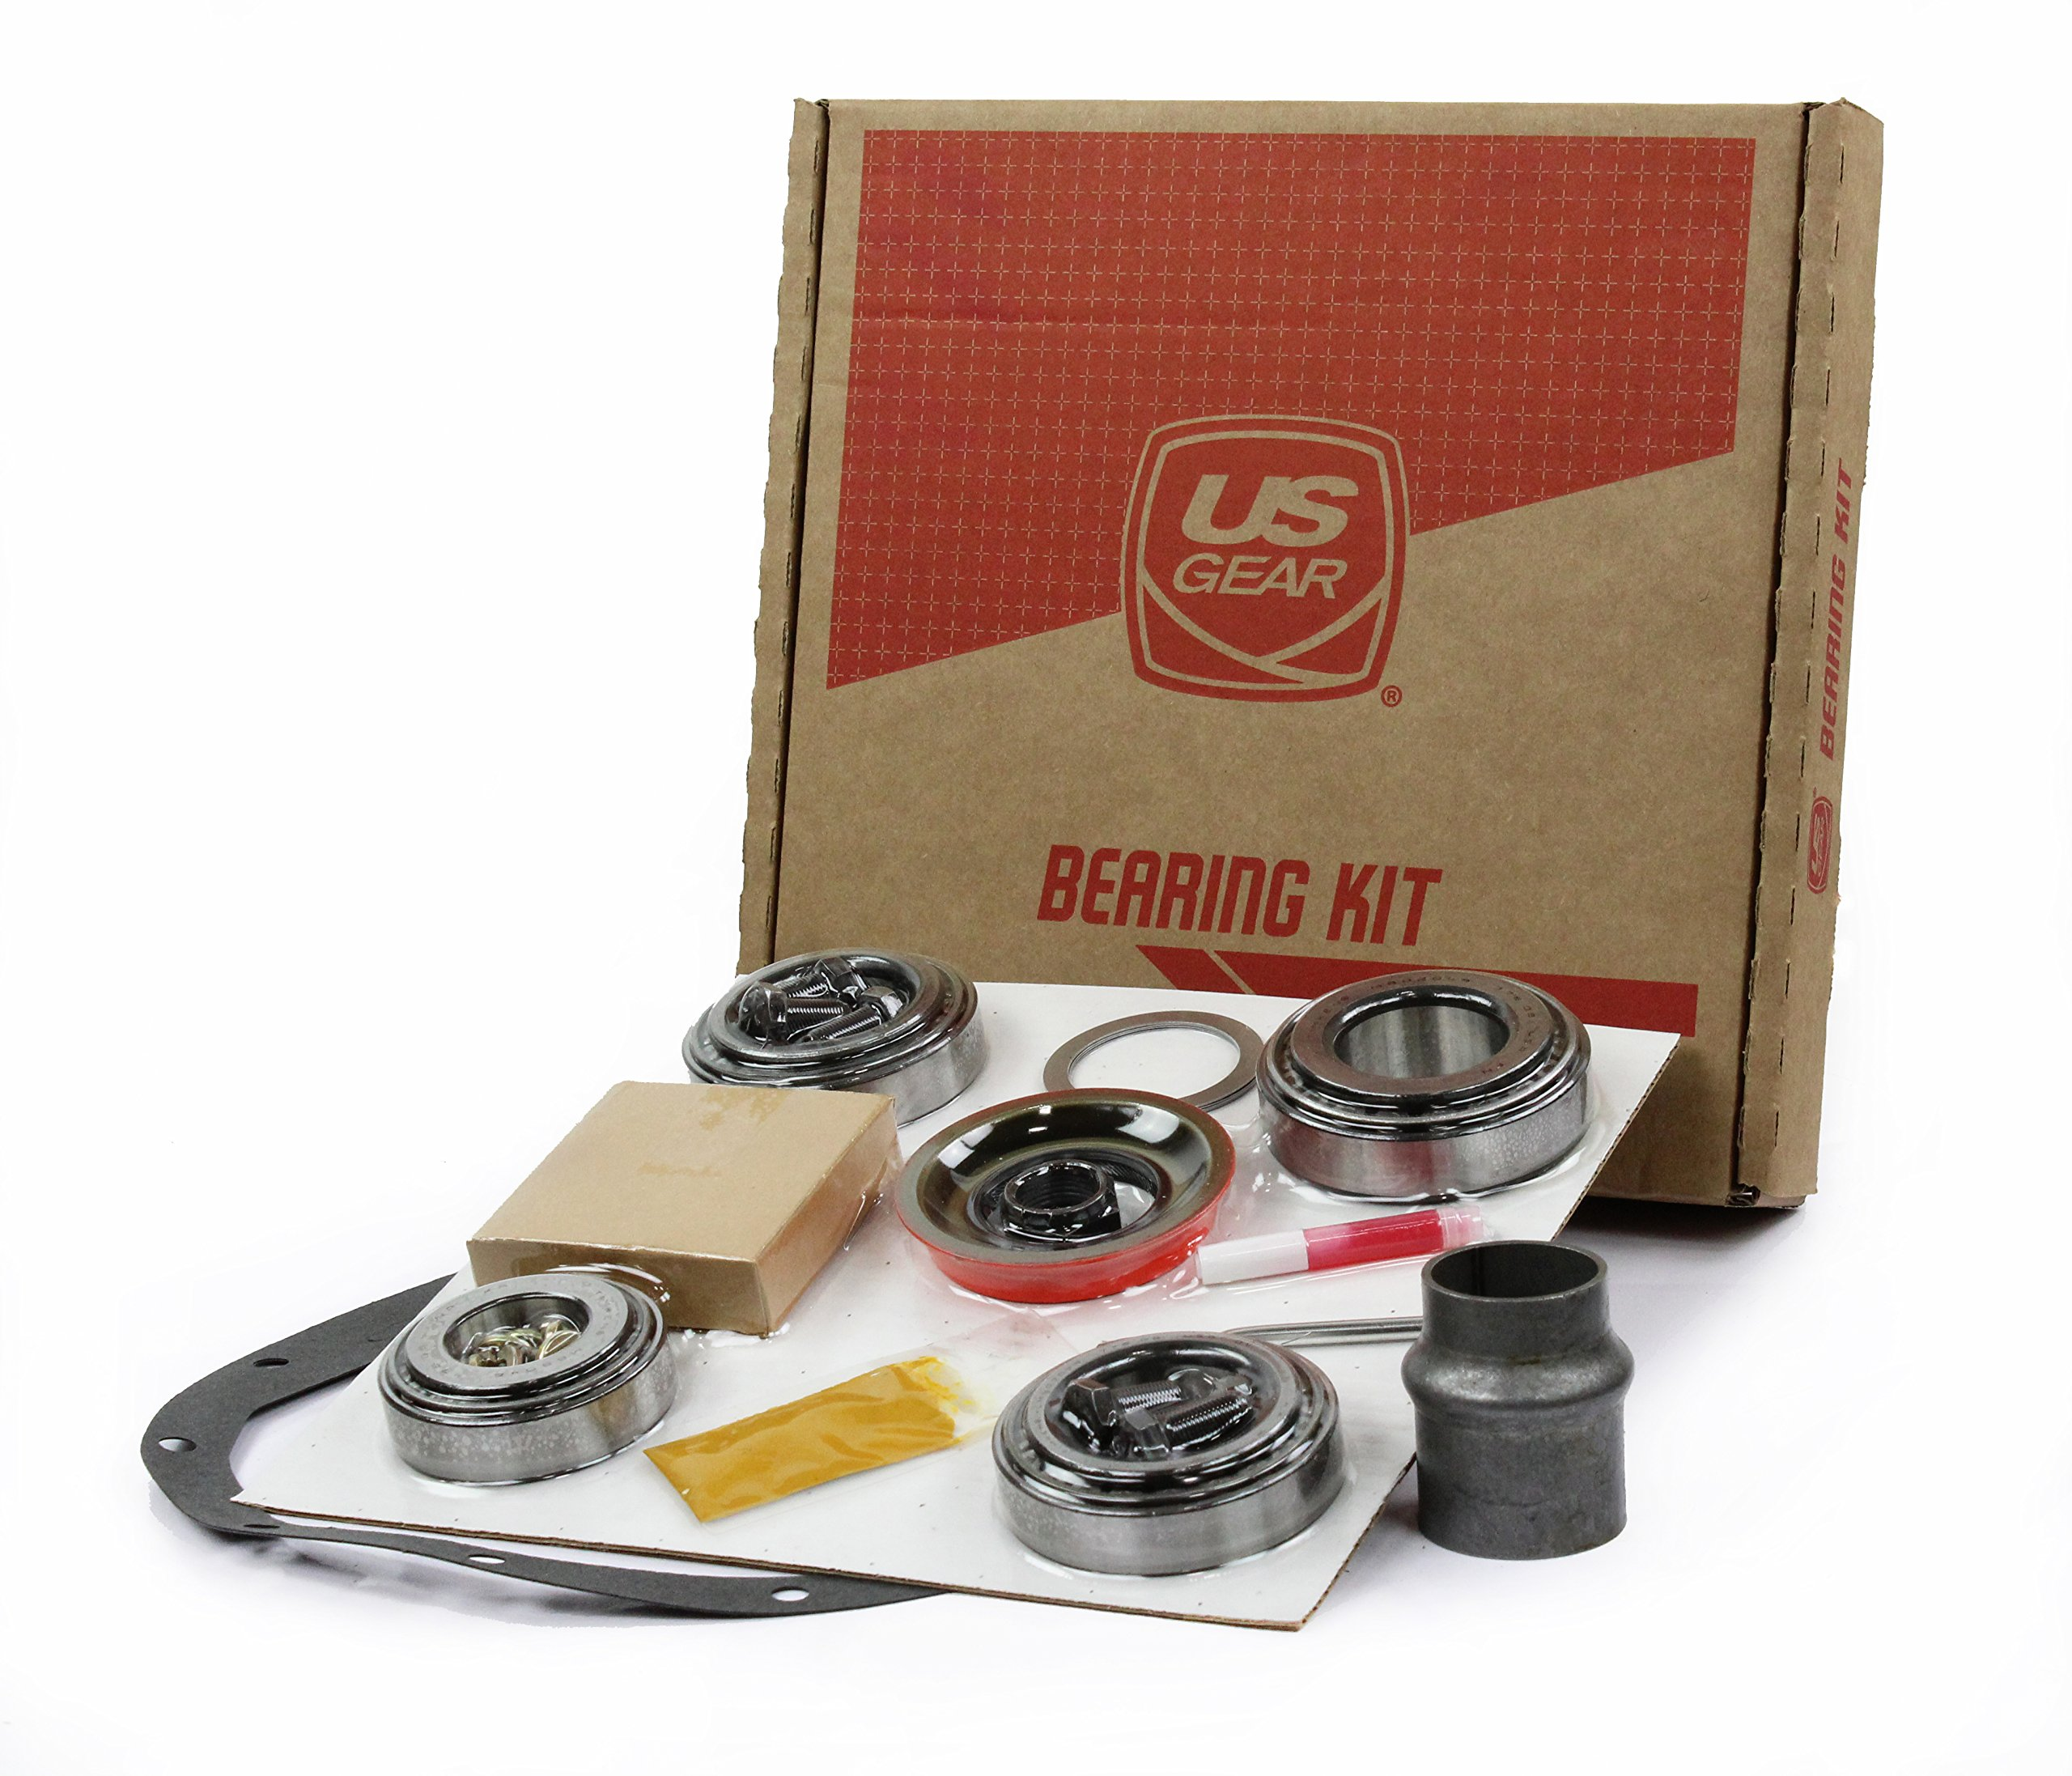 US Gear US1019 Bearing Kit